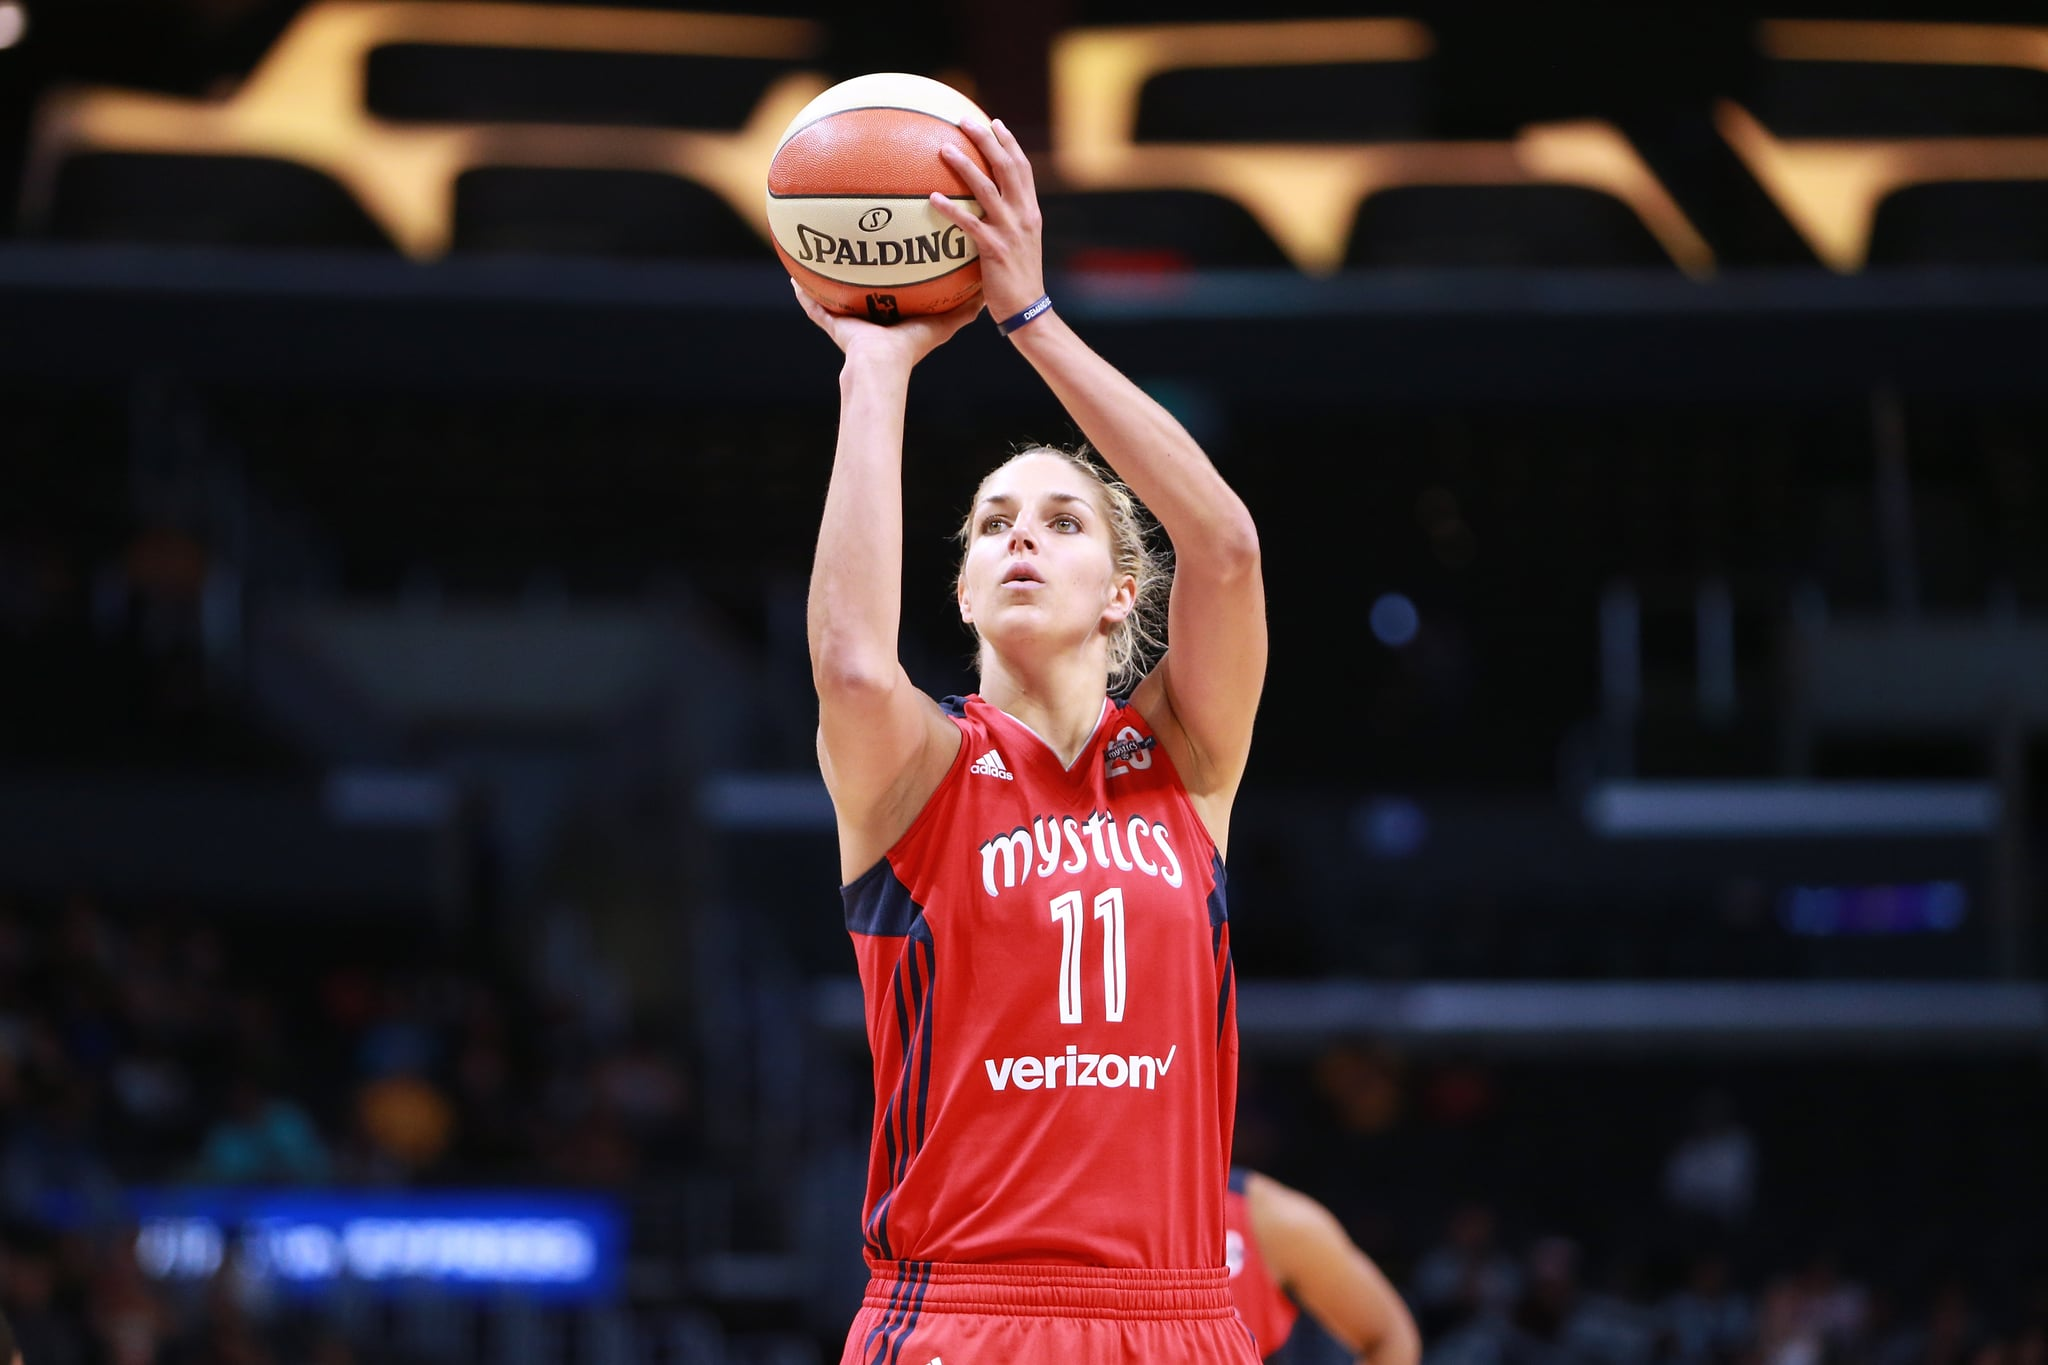 LOS ANGELES, CA - JULY 02:  Elena Delle Donne #11 of the Washington Mystics handles the ball against the Los Angeles Sparks during a WNBA basketball game at Staples Centre on July 2, 2017 in Los Angeles, California.  (Photo by Leon Bennett/Getty Images)